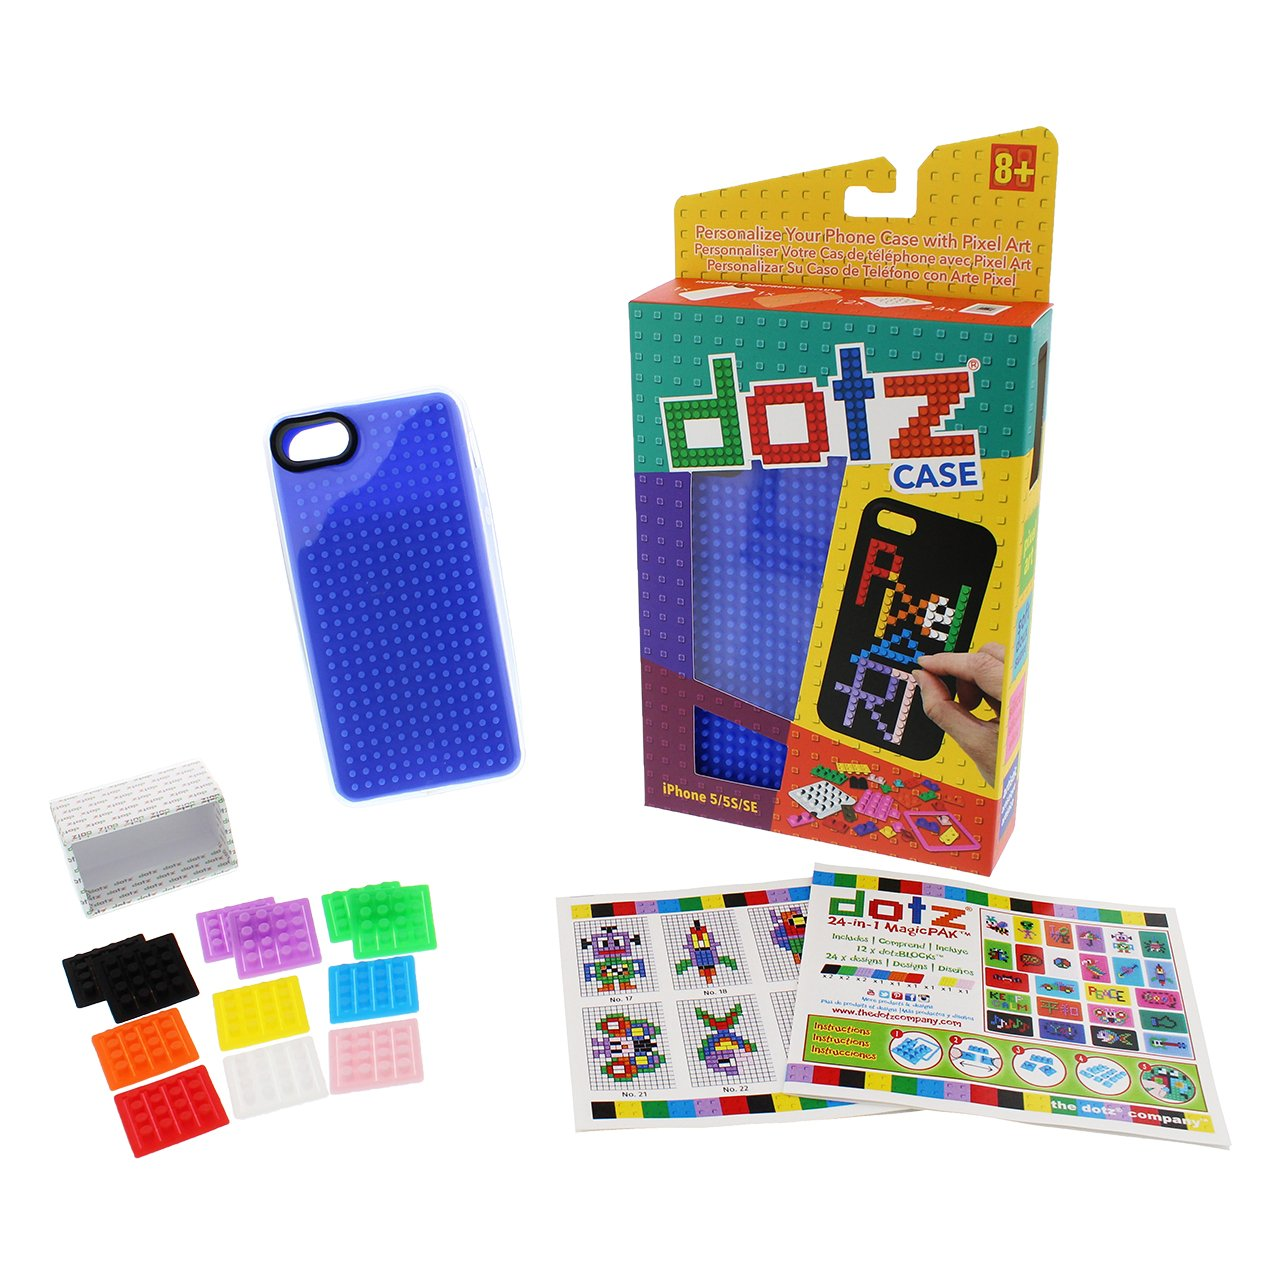 Amazon.com: DotzCASE iPhone 5 Cover Personalize Your iPhone with Pixelated Designs - Lemon Yellow: Cell Phones & Accessories